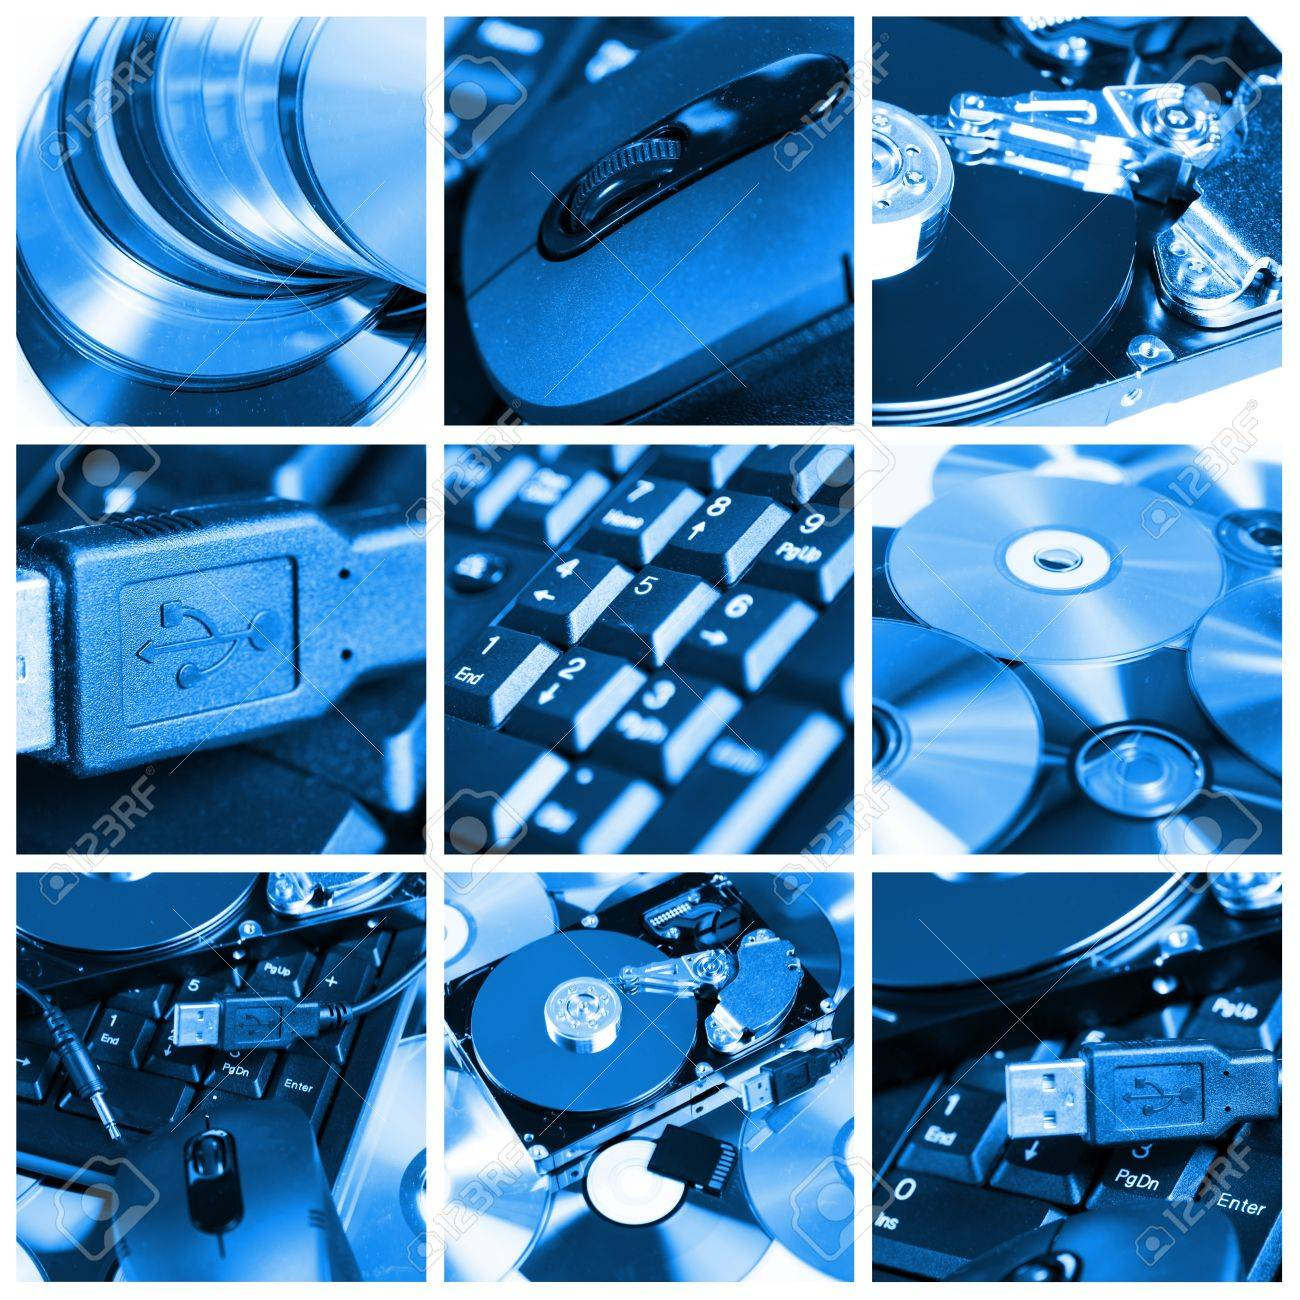 collage of different computer devices and equipment stock photo